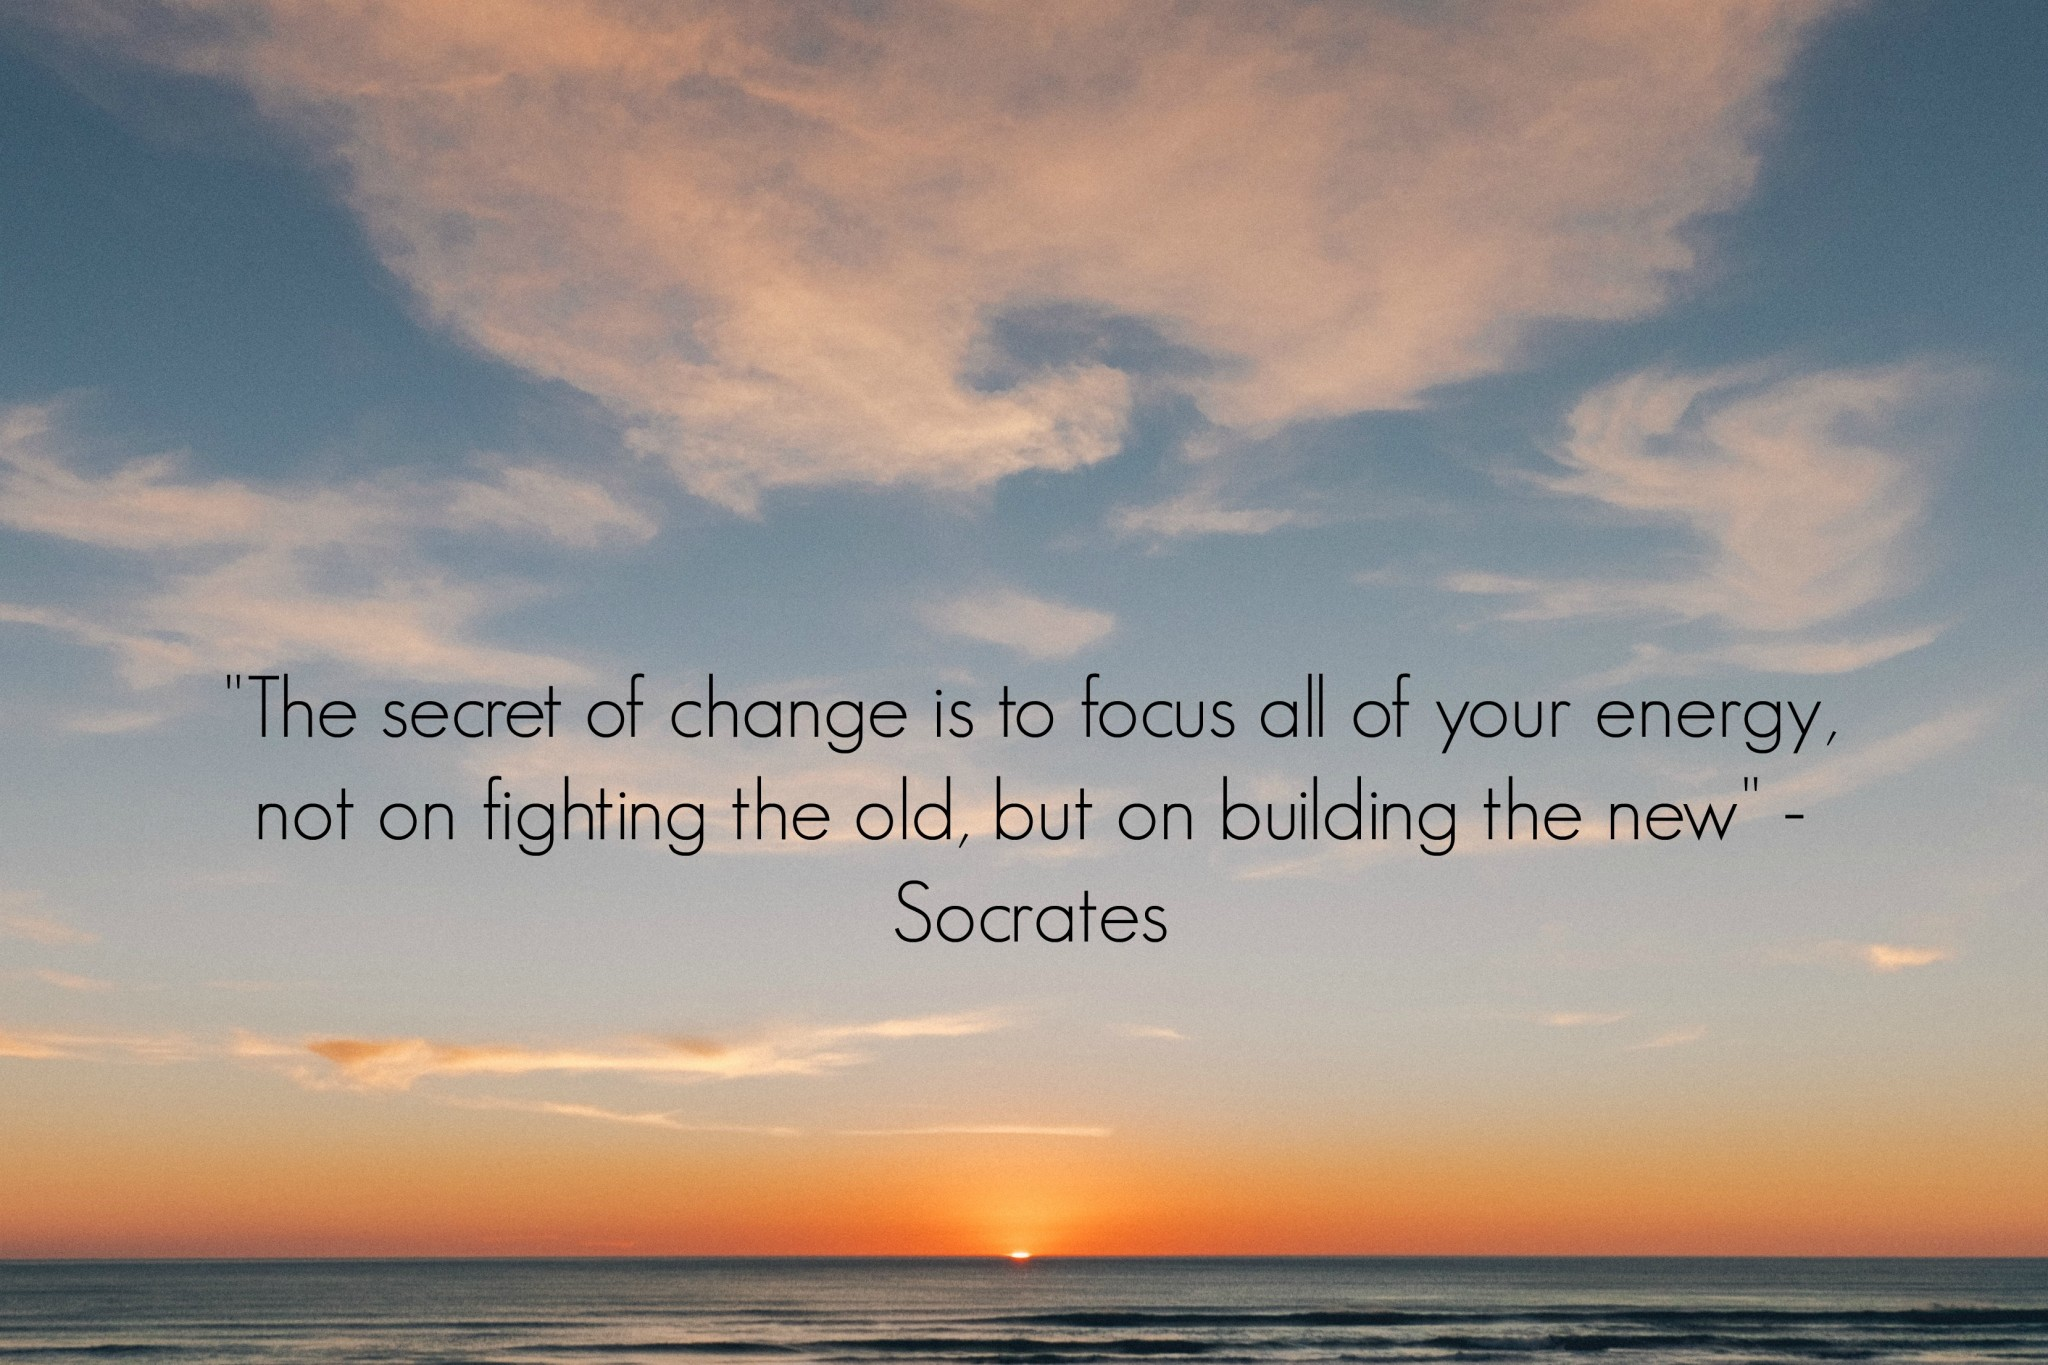 Socrates Quotes On Marriage: The Secret Of Change Socrates Quote